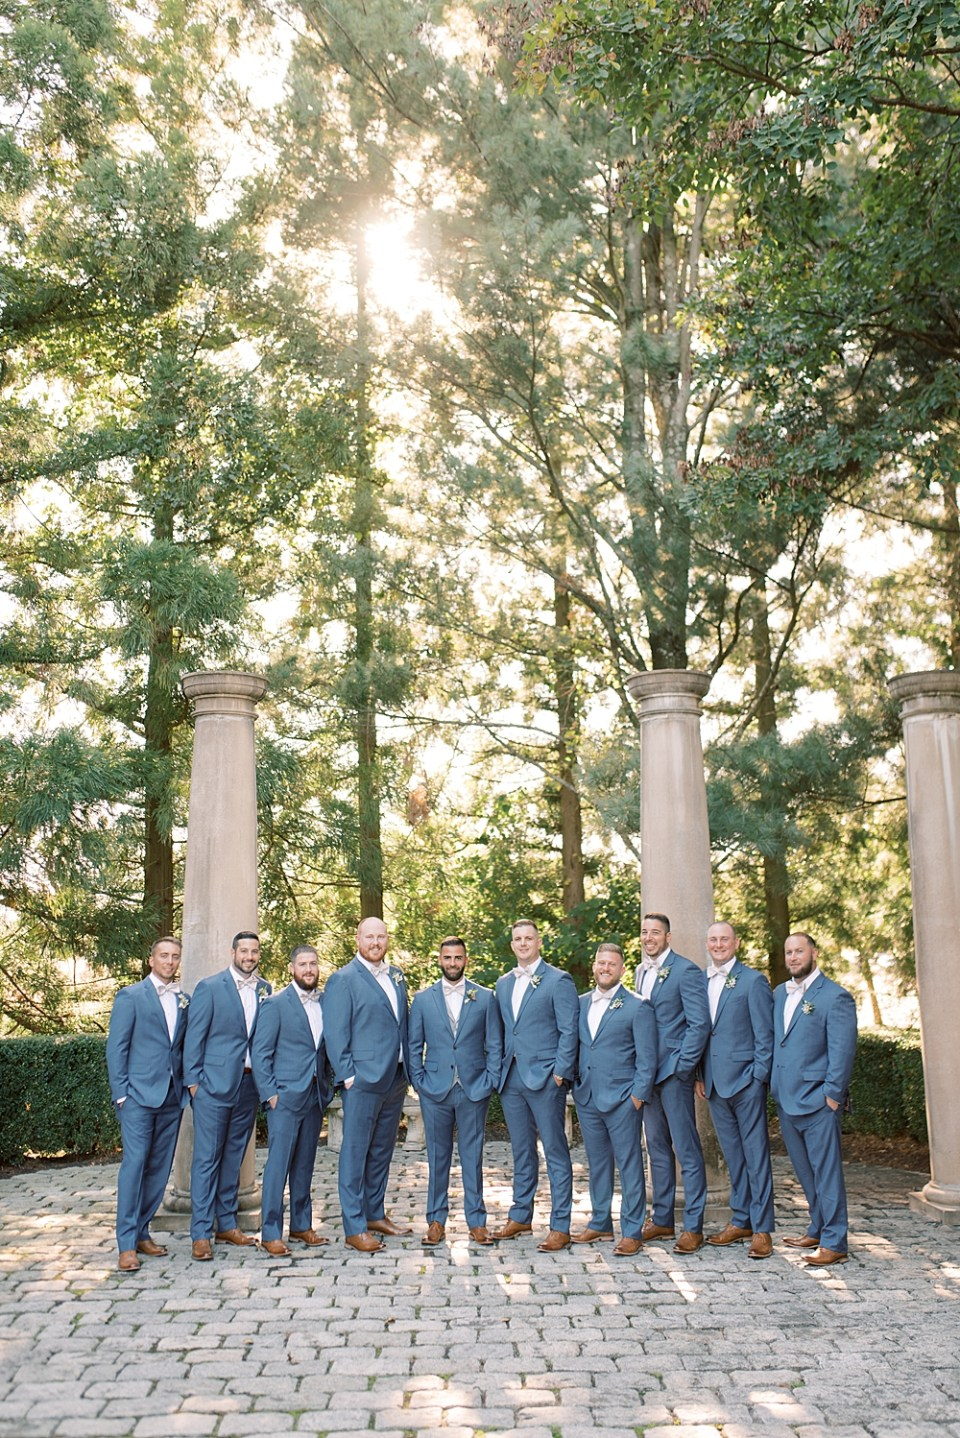 groom with groomsmen in blue suits   ashford estate wedding photography   sarah canning photography